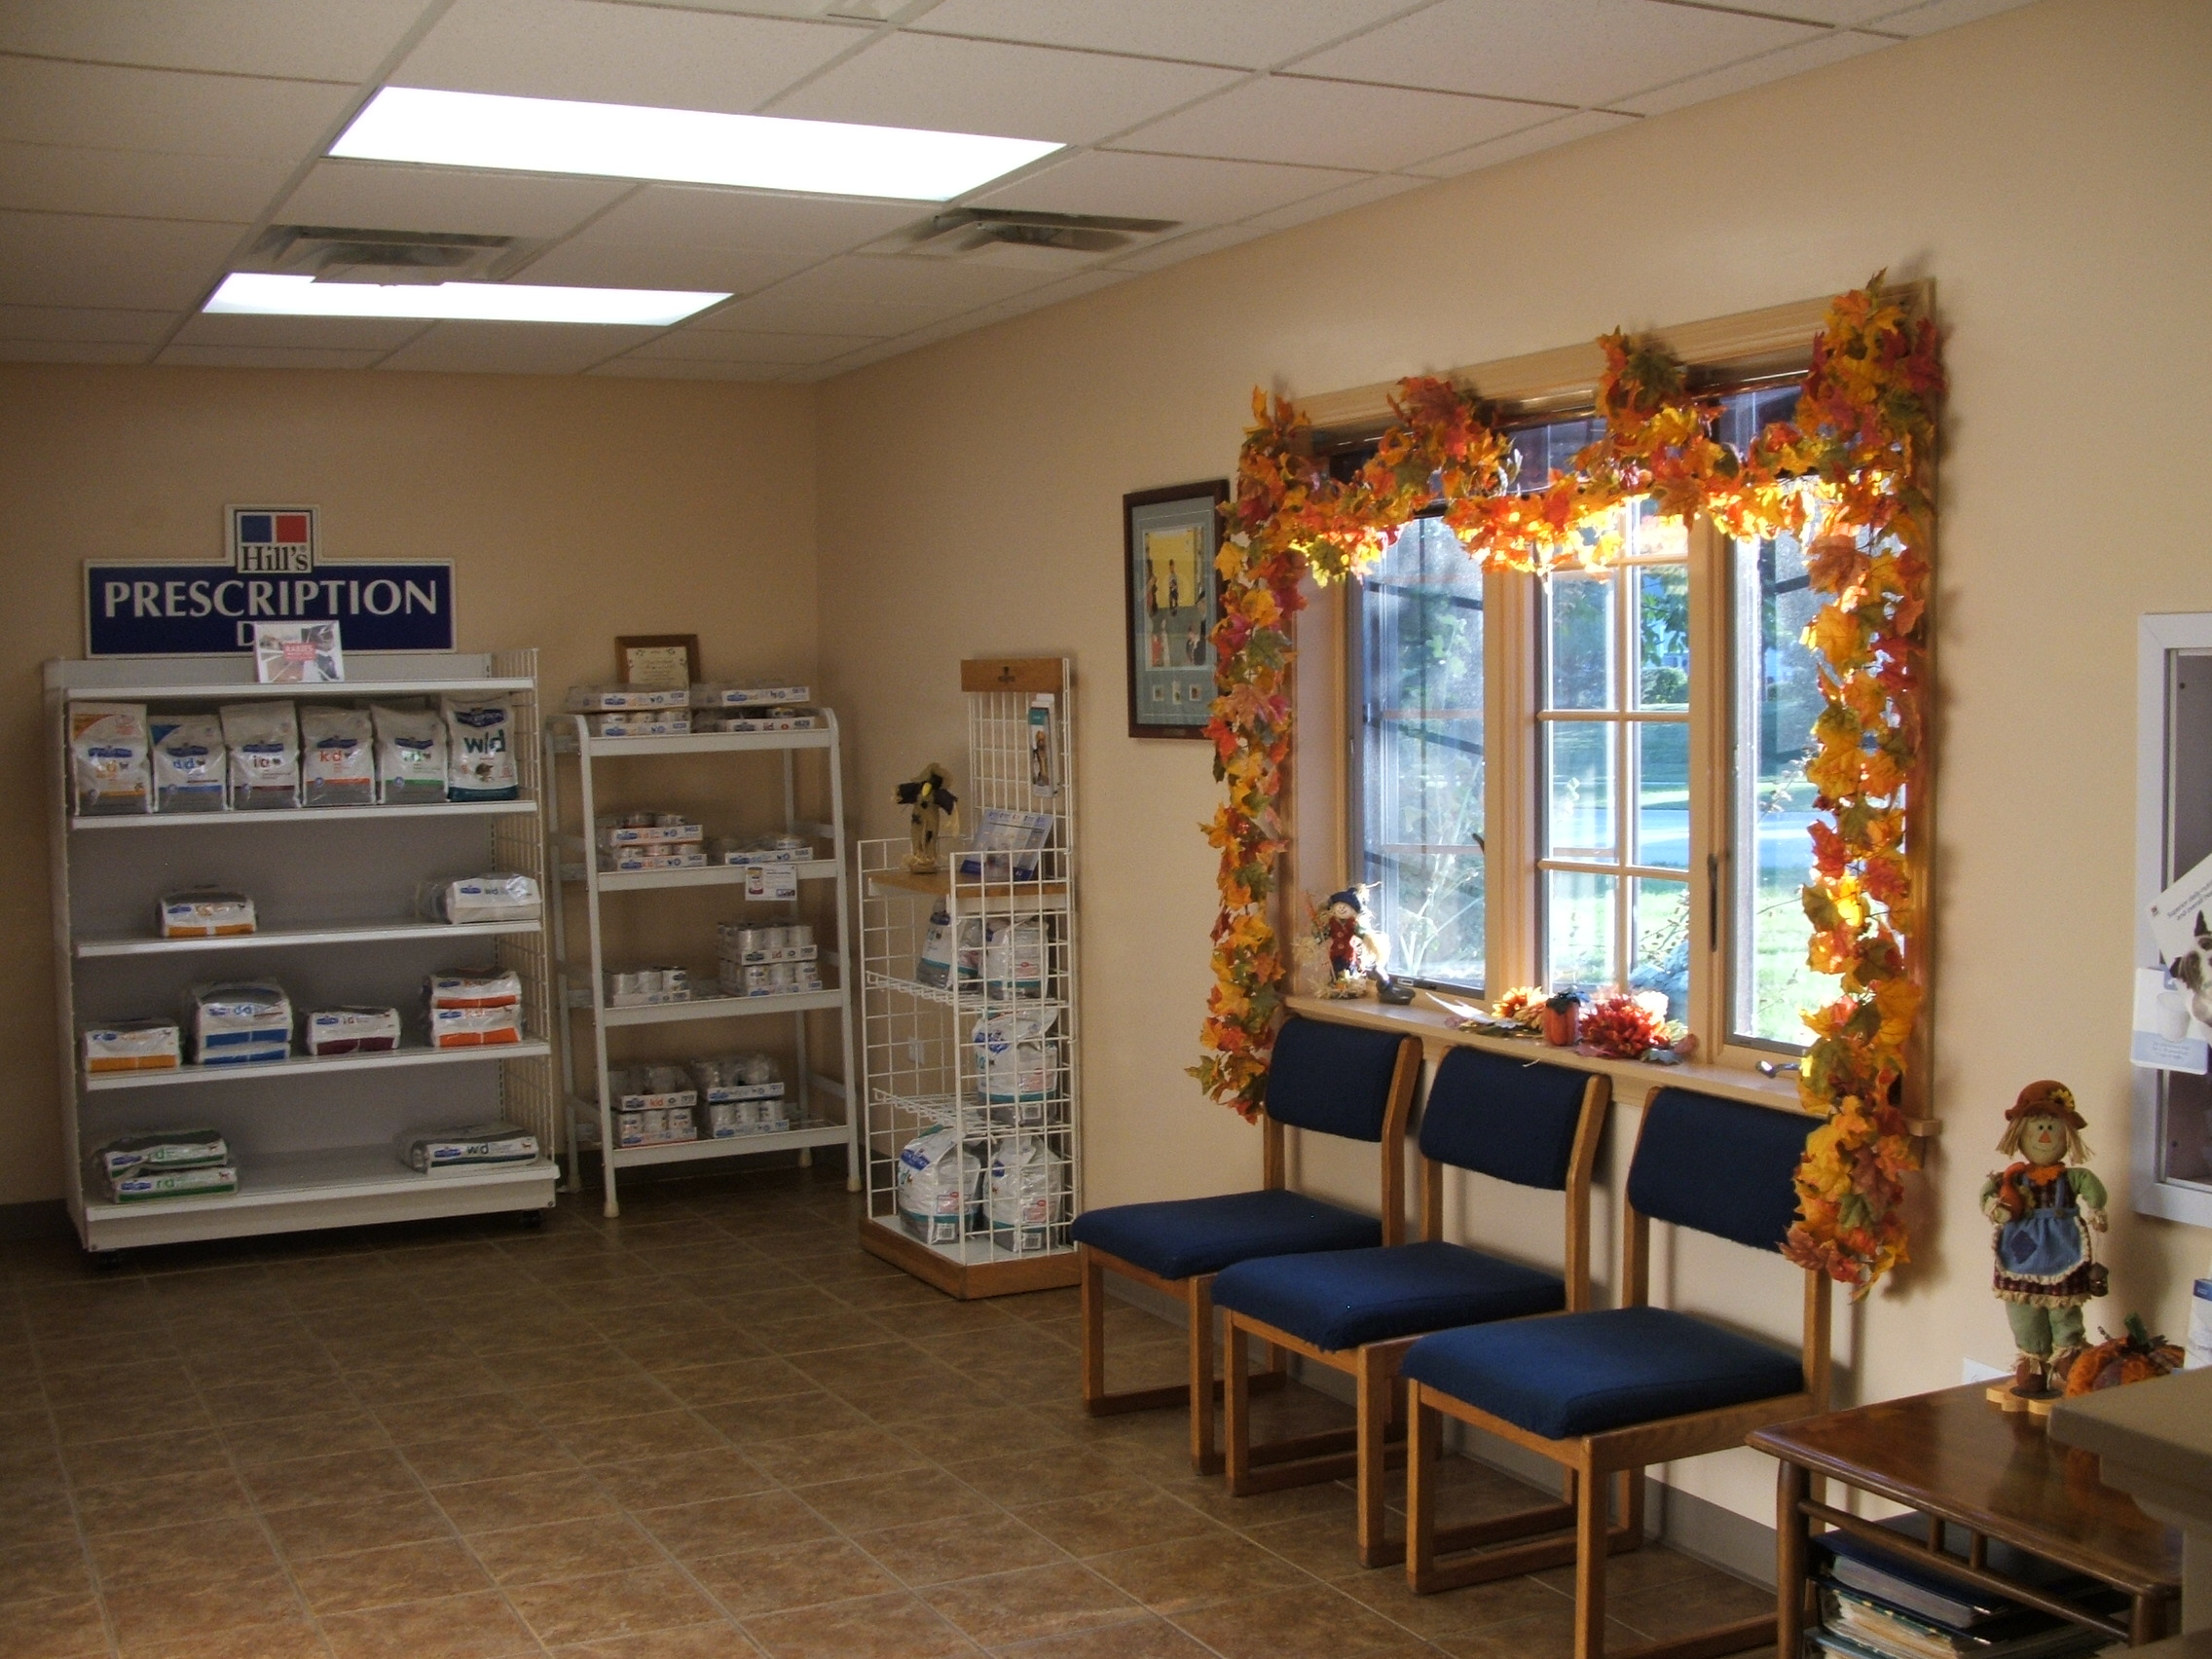 Fox Ridge Vet Clinic lobby